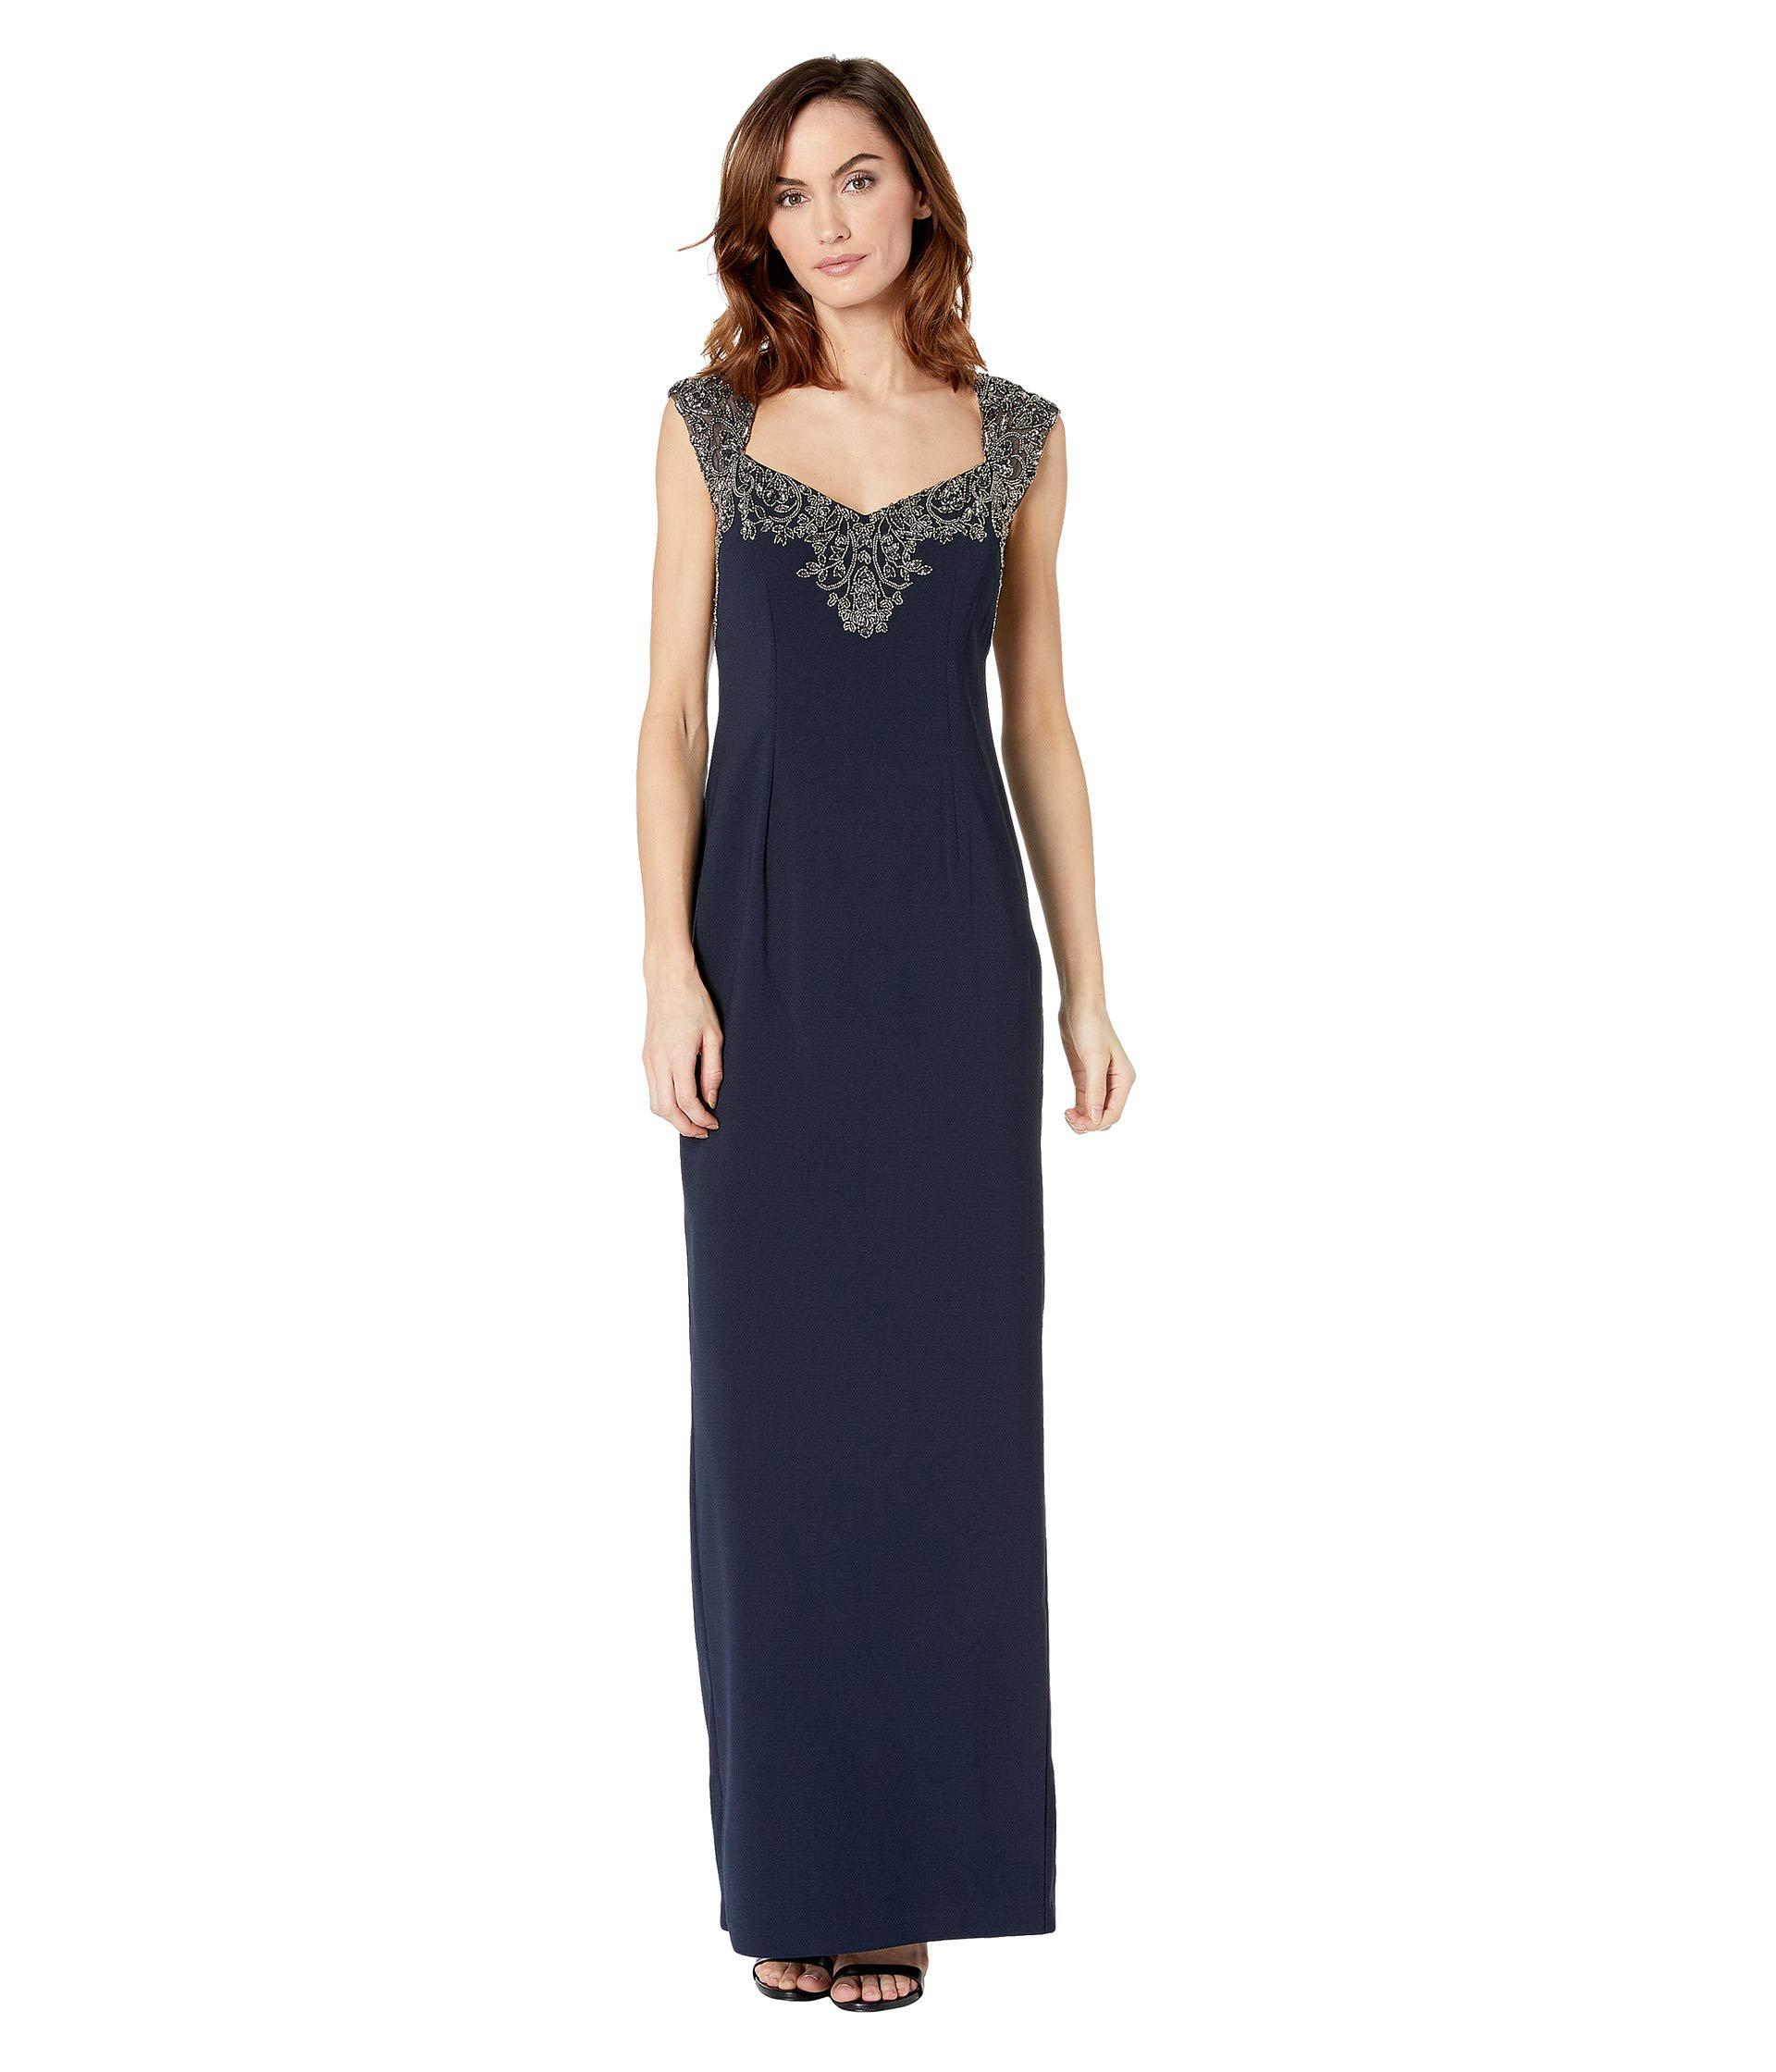 985e2430 Lyst - Adrianna Papell Beaded Top Evening Gown (midnight) Women's ...